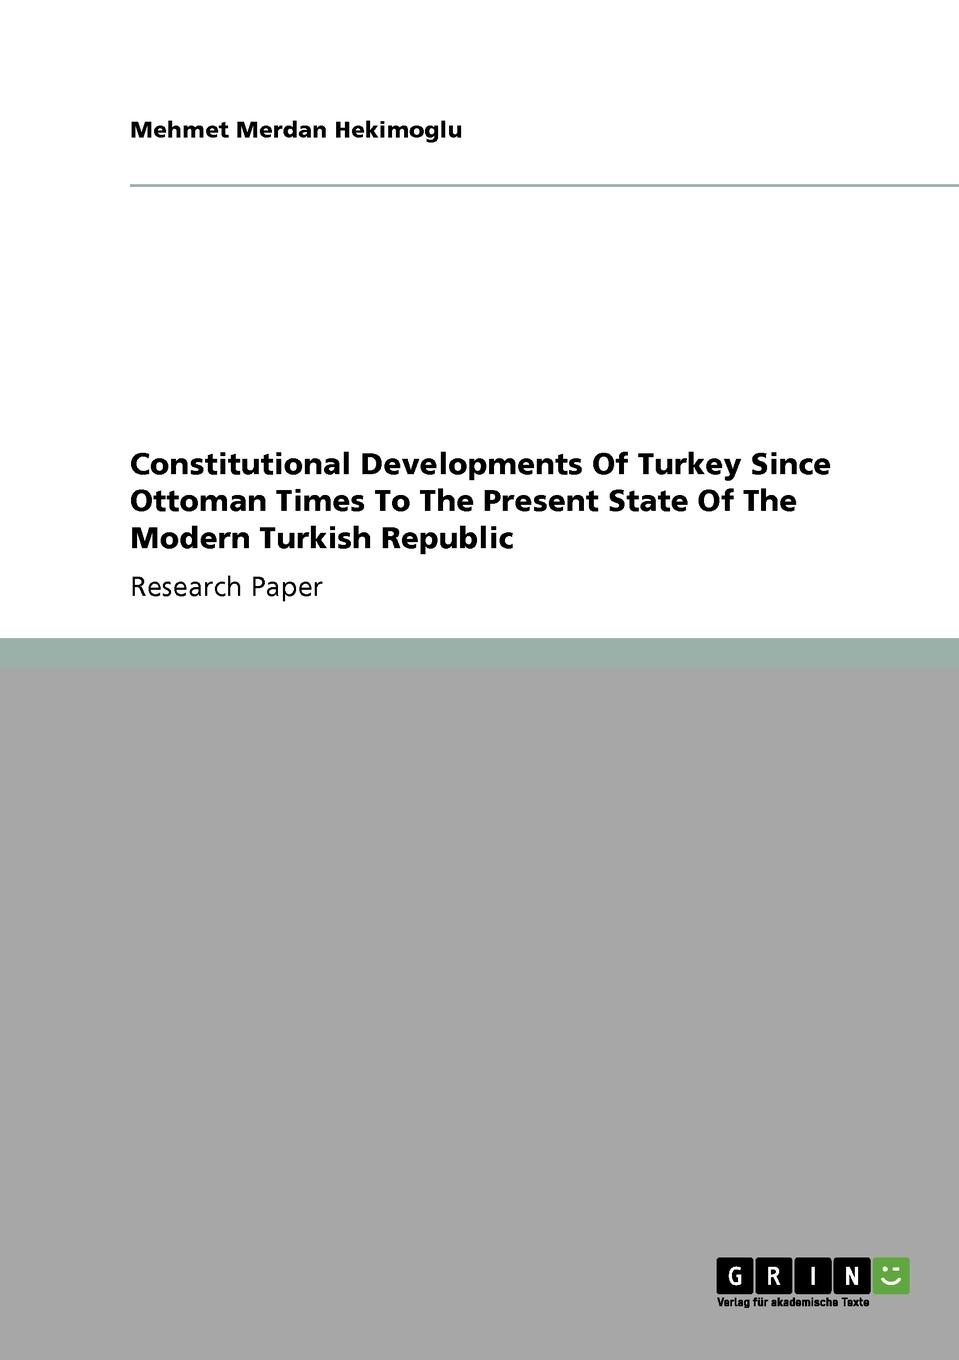 Mehmet Merdan Hekimoglu Constitutional Developments Of Turkey Since Ottoman Times To The Present State Of The Modern Turkish Republic rd robinson high–level manpower in economical development – the turkish case